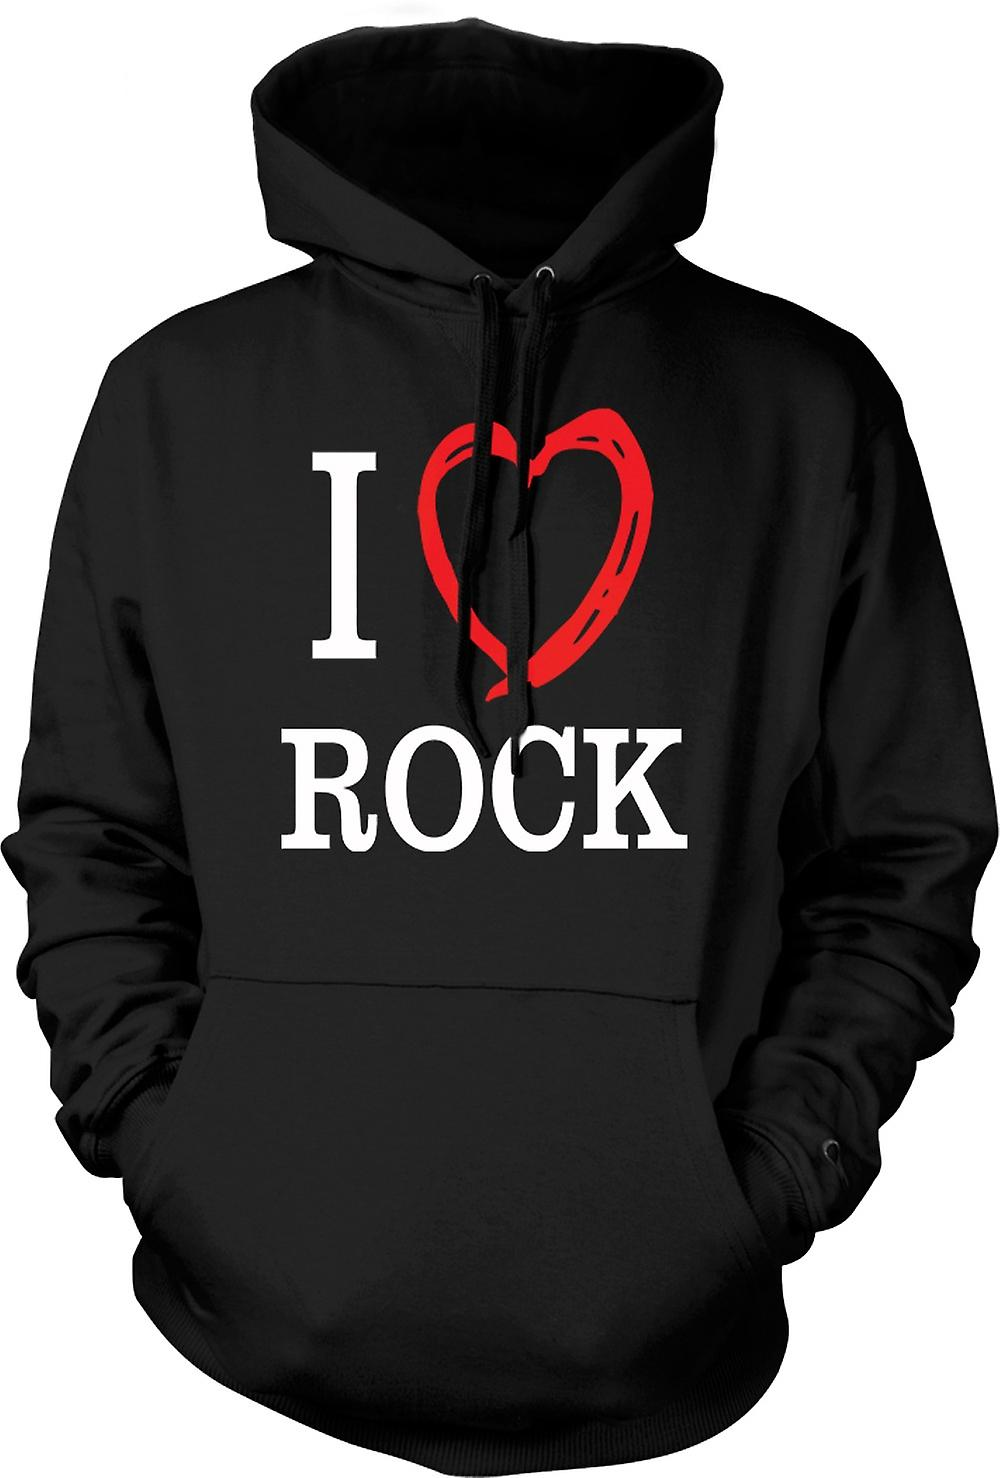 Mens Hoodie - I Love Rock Music Band - Quote